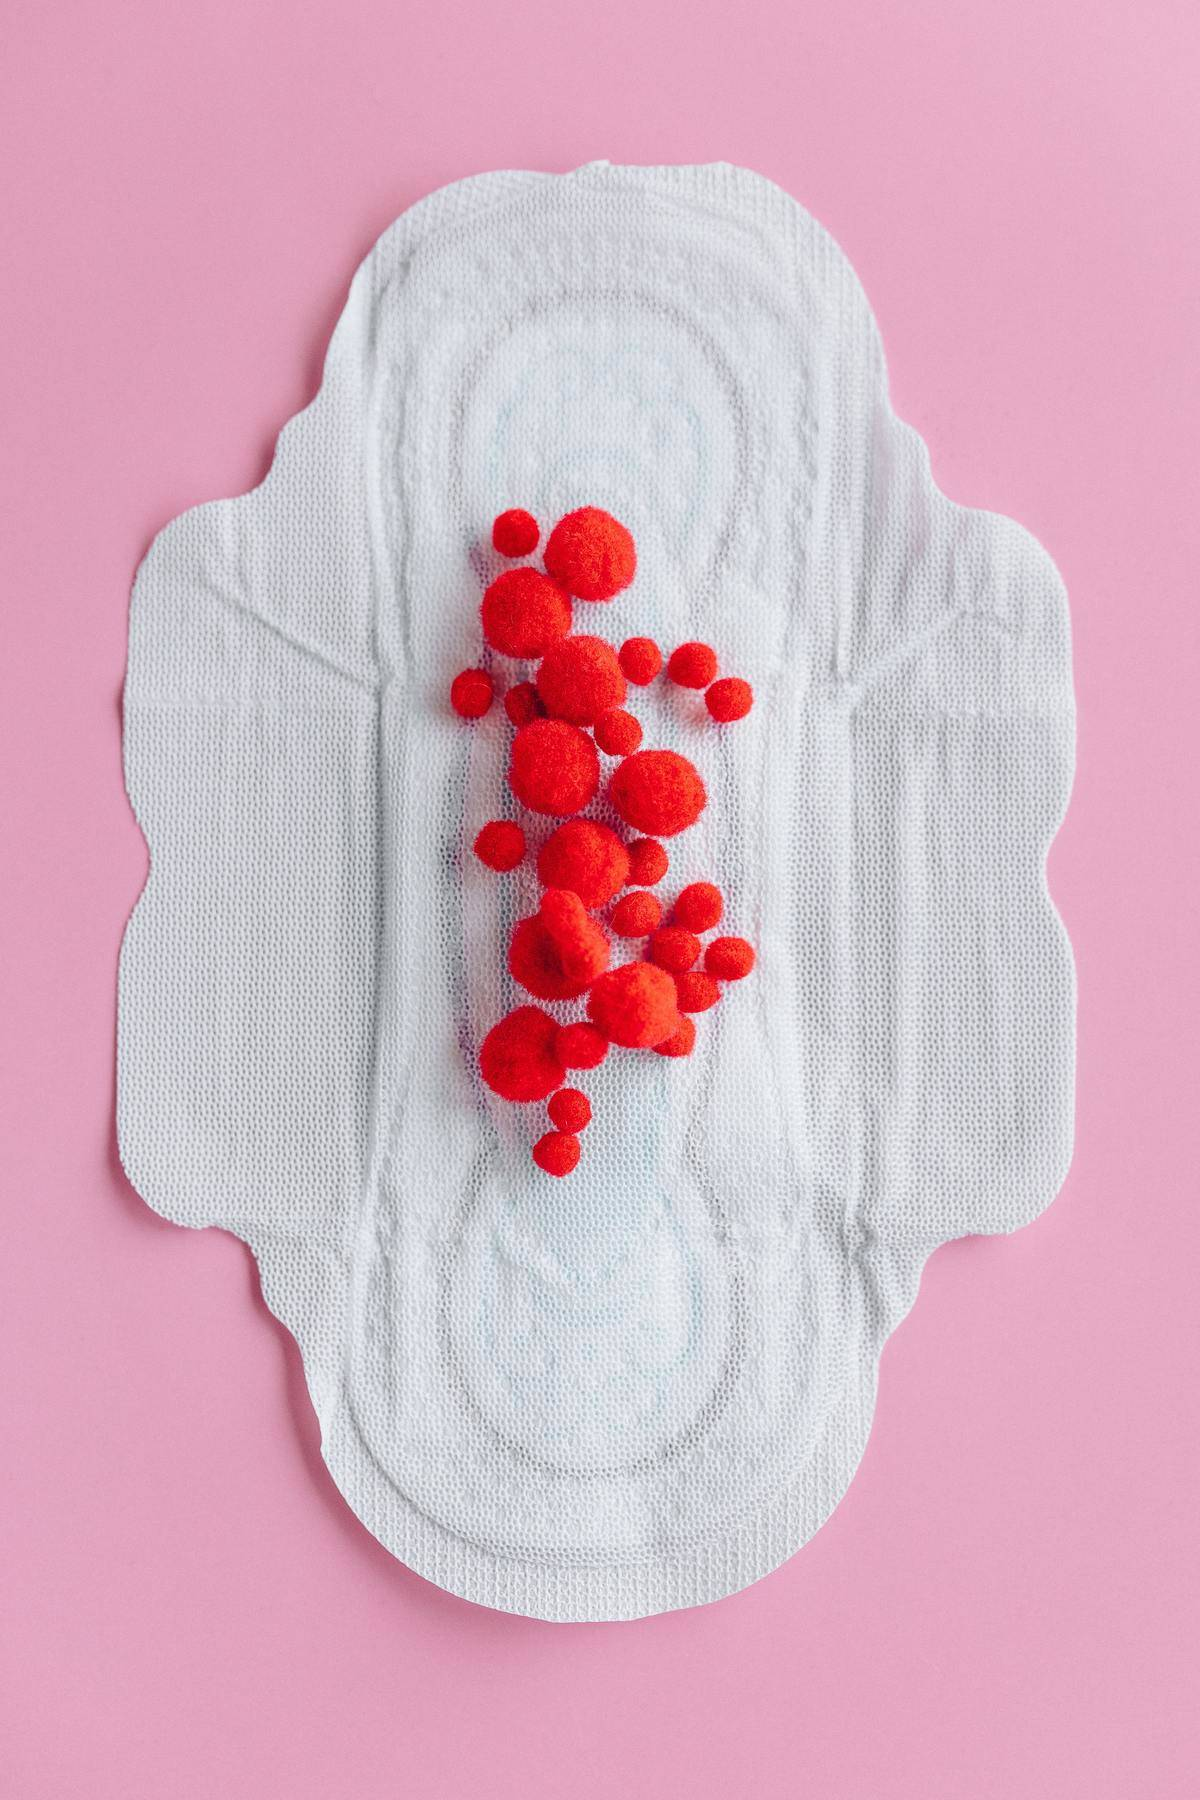 Period pad with red balls on it meant to simulate blood